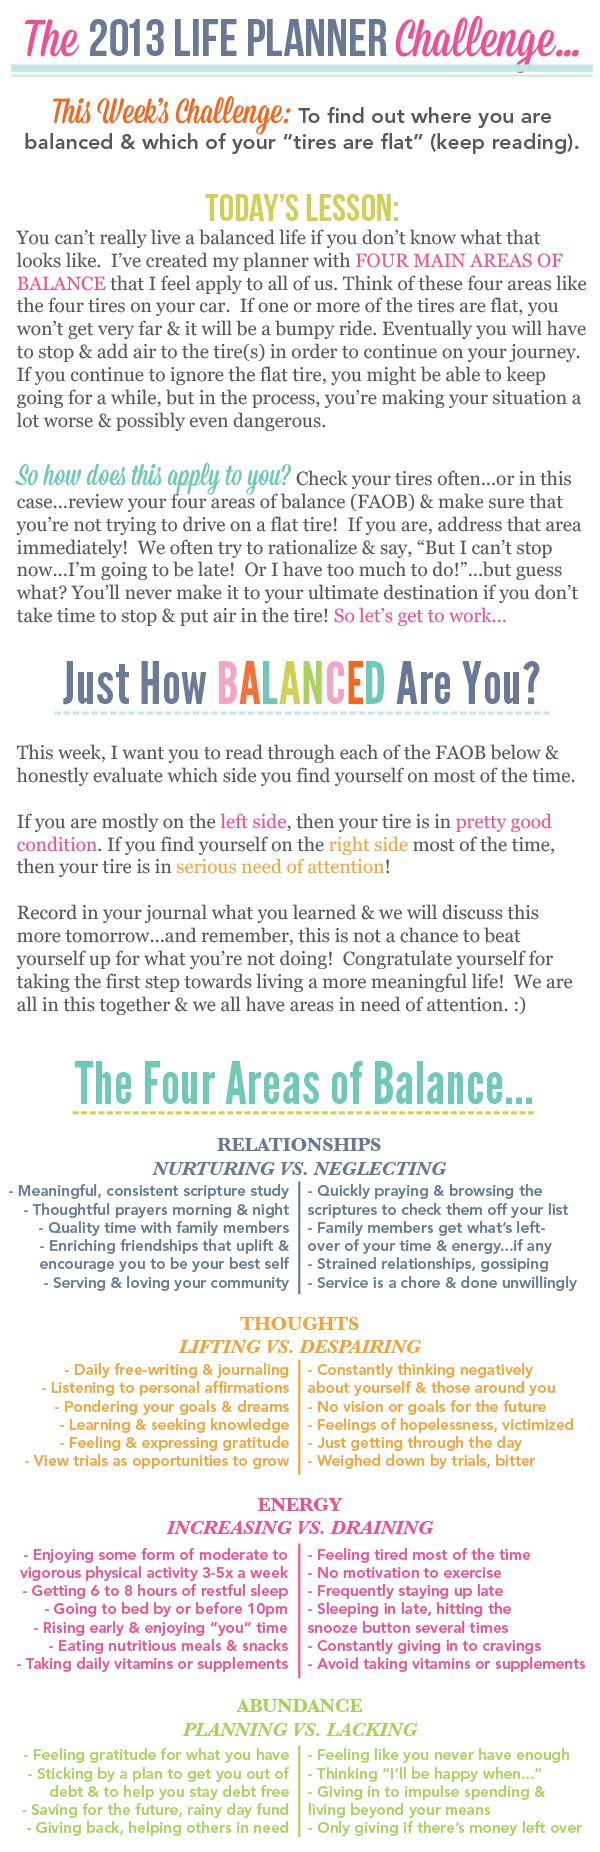 Day one of my life planner challenge...Just How Balanced Are You?...for RRR who is on a good path. I love you. :-)